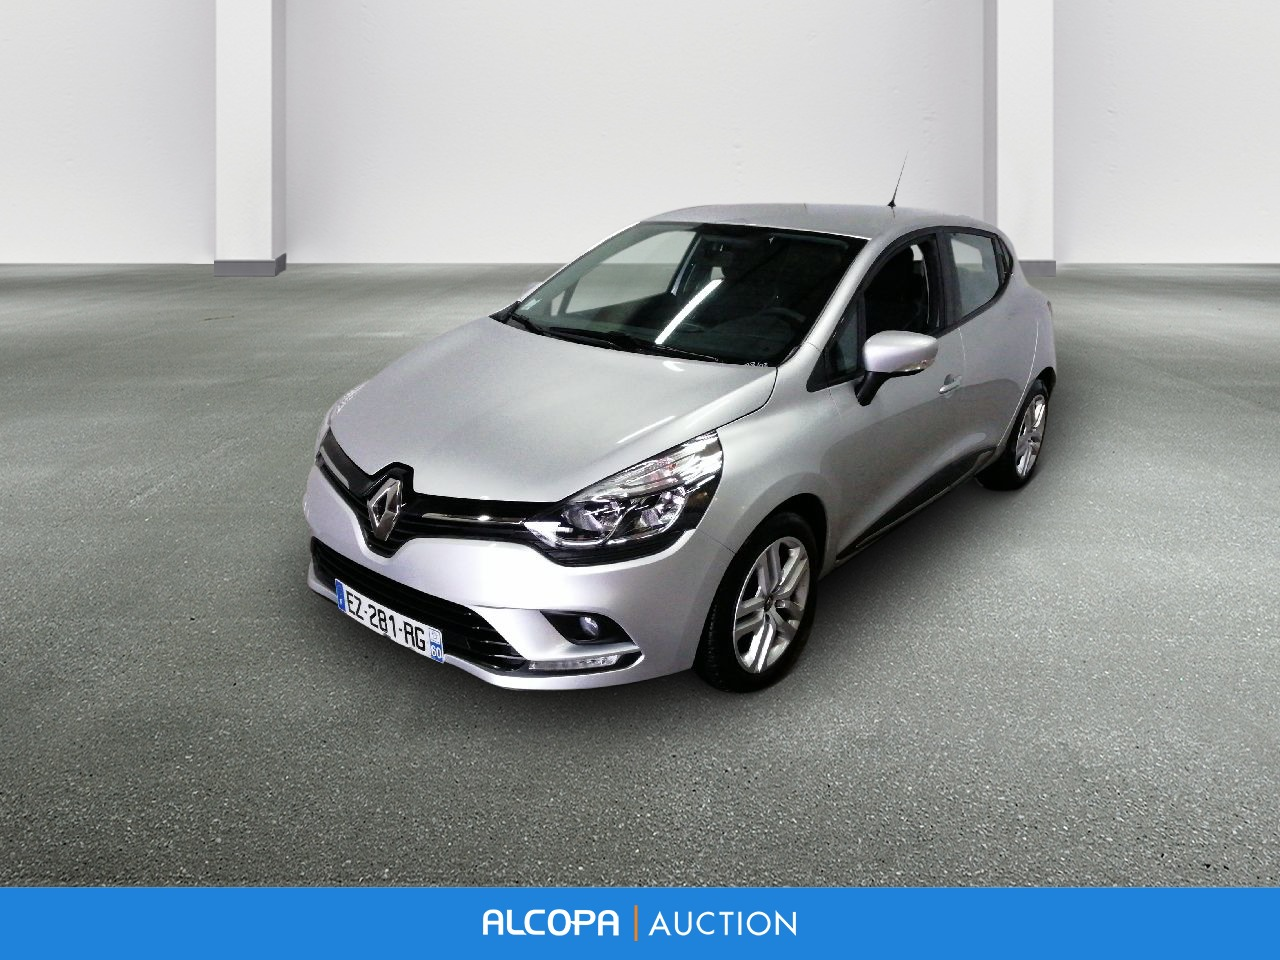 renault clio clio dci 75 energy e6c business alcopa auction. Black Bedroom Furniture Sets. Home Design Ideas